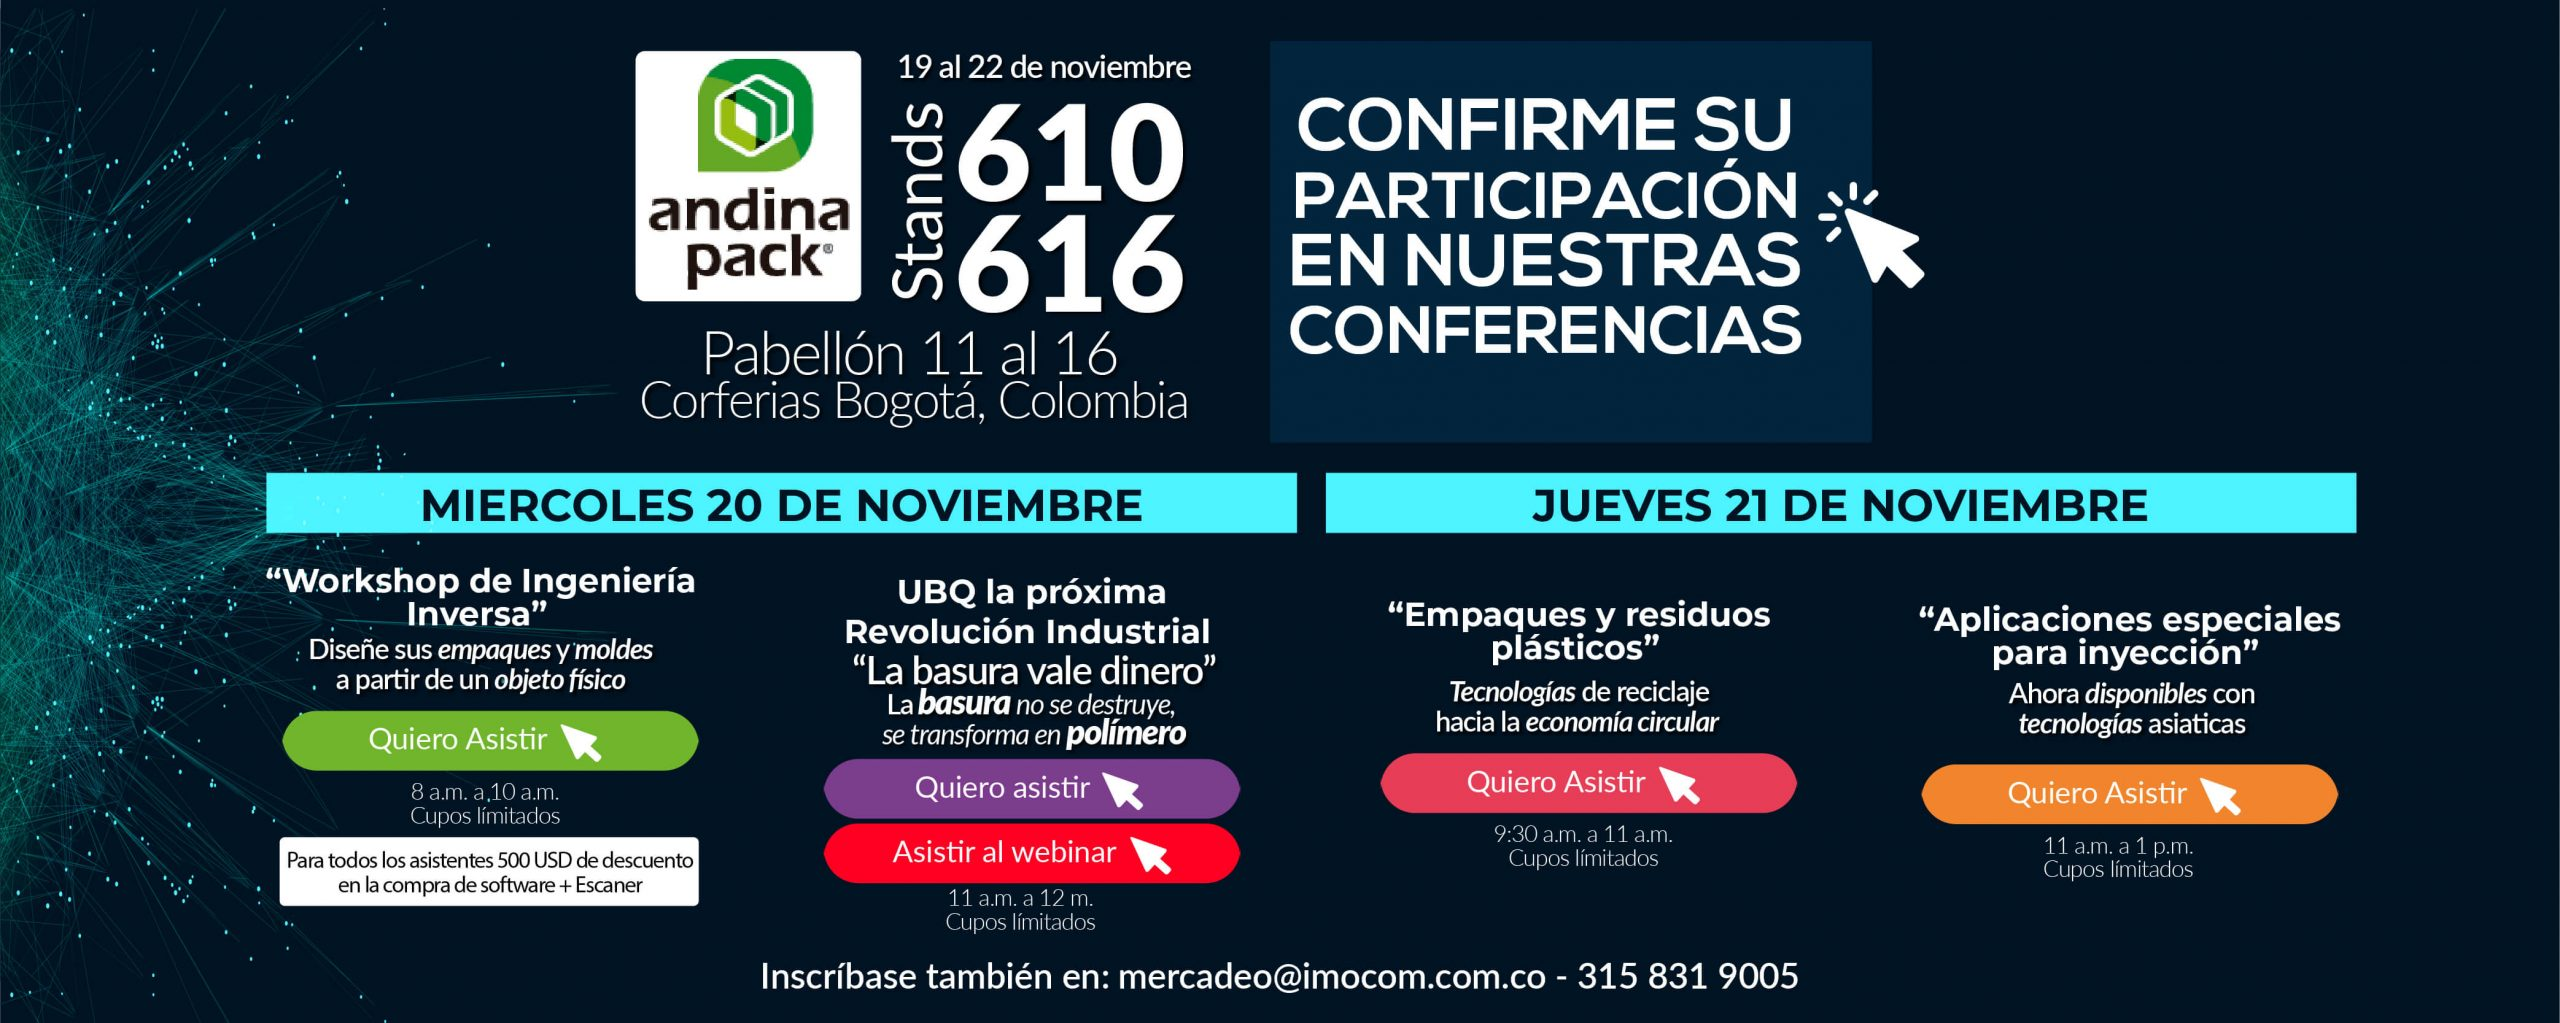 Conferencias IMOCOM Andinapack 2019